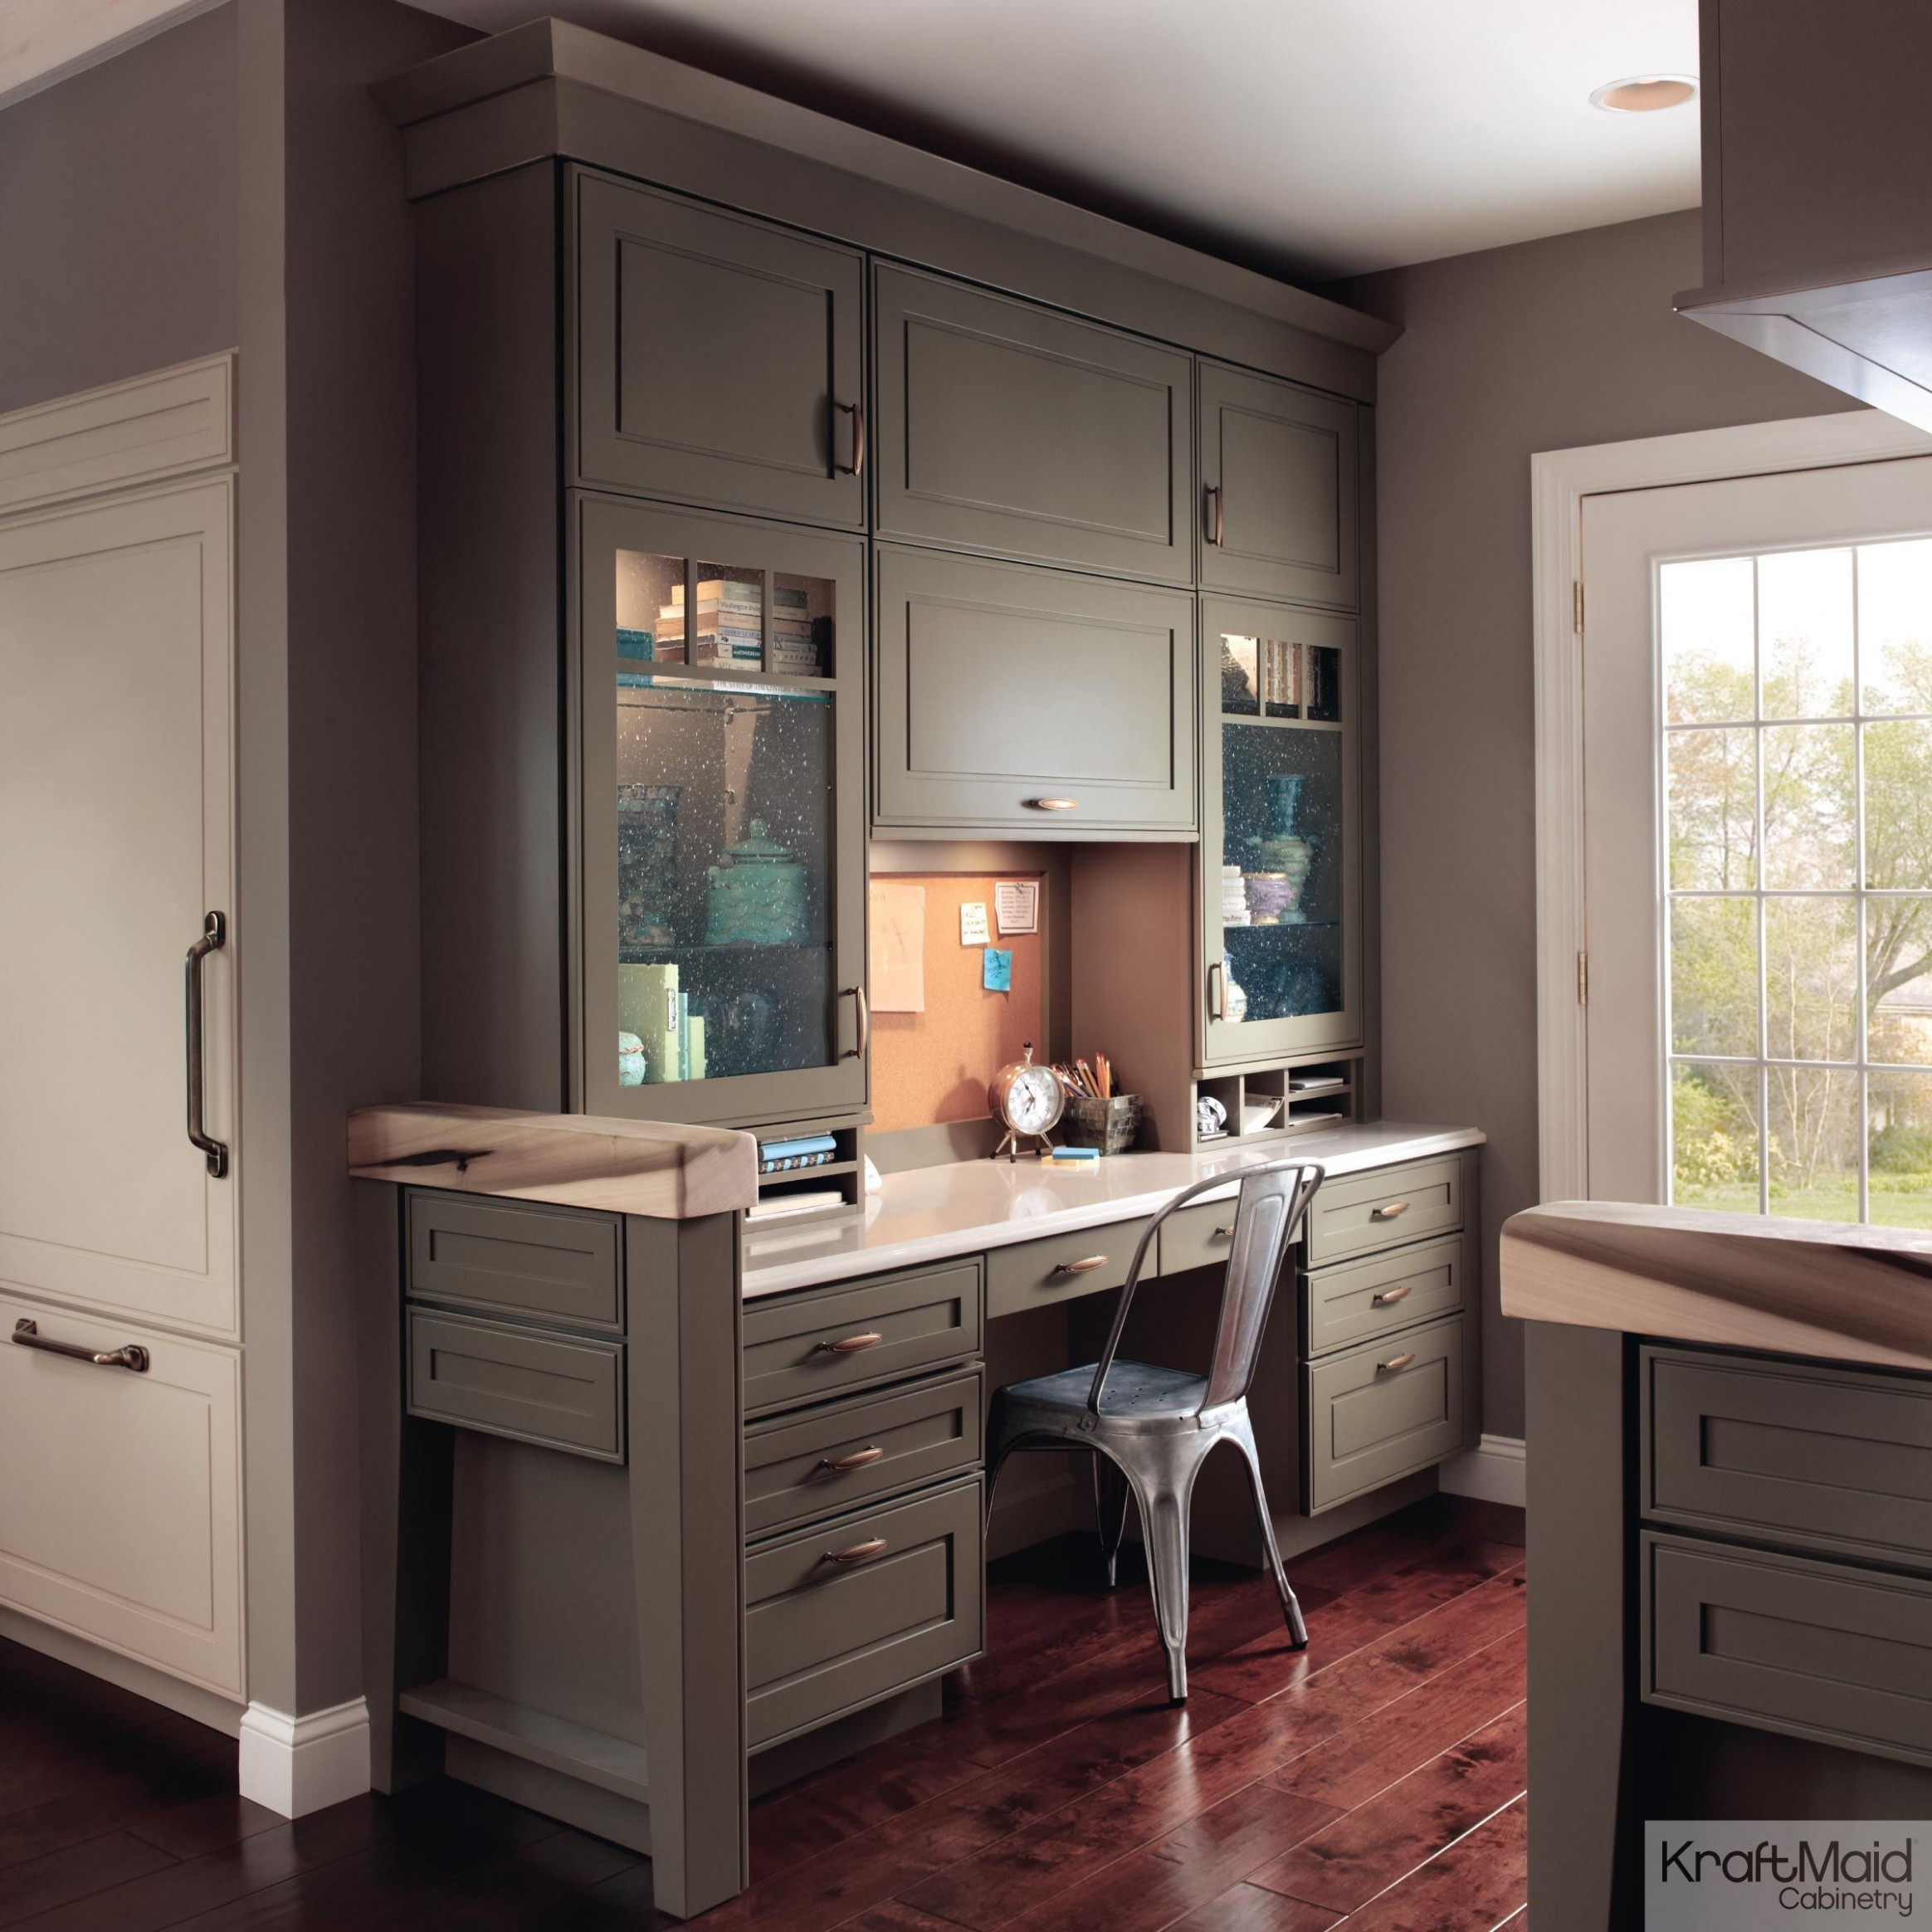 Sage and Mushroom finishes star in this timeless home office